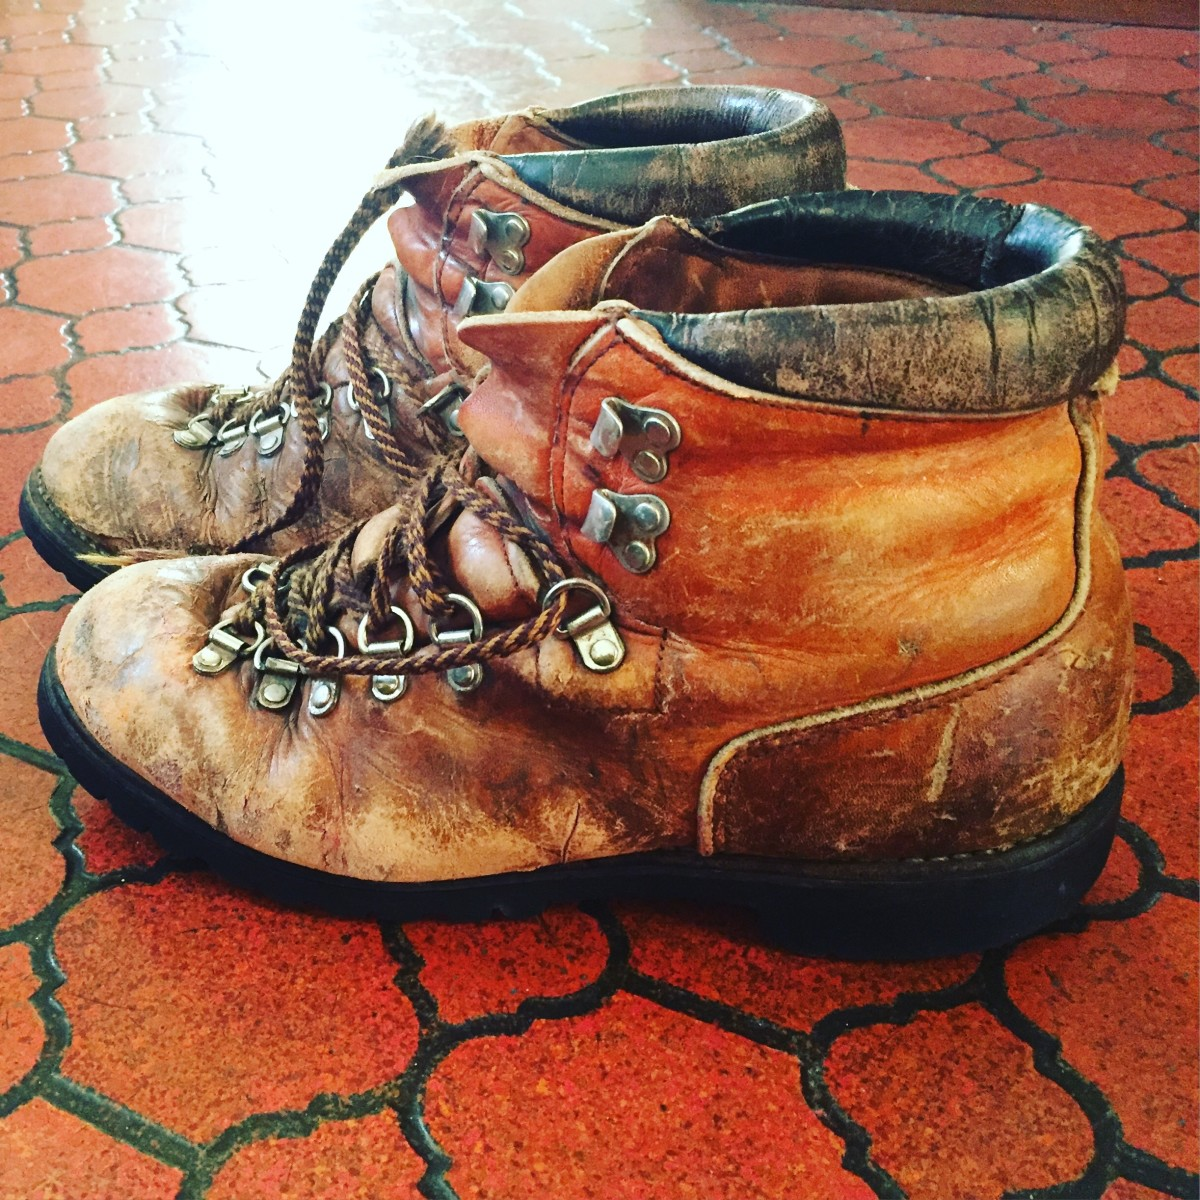 Lot of miles left in these boots